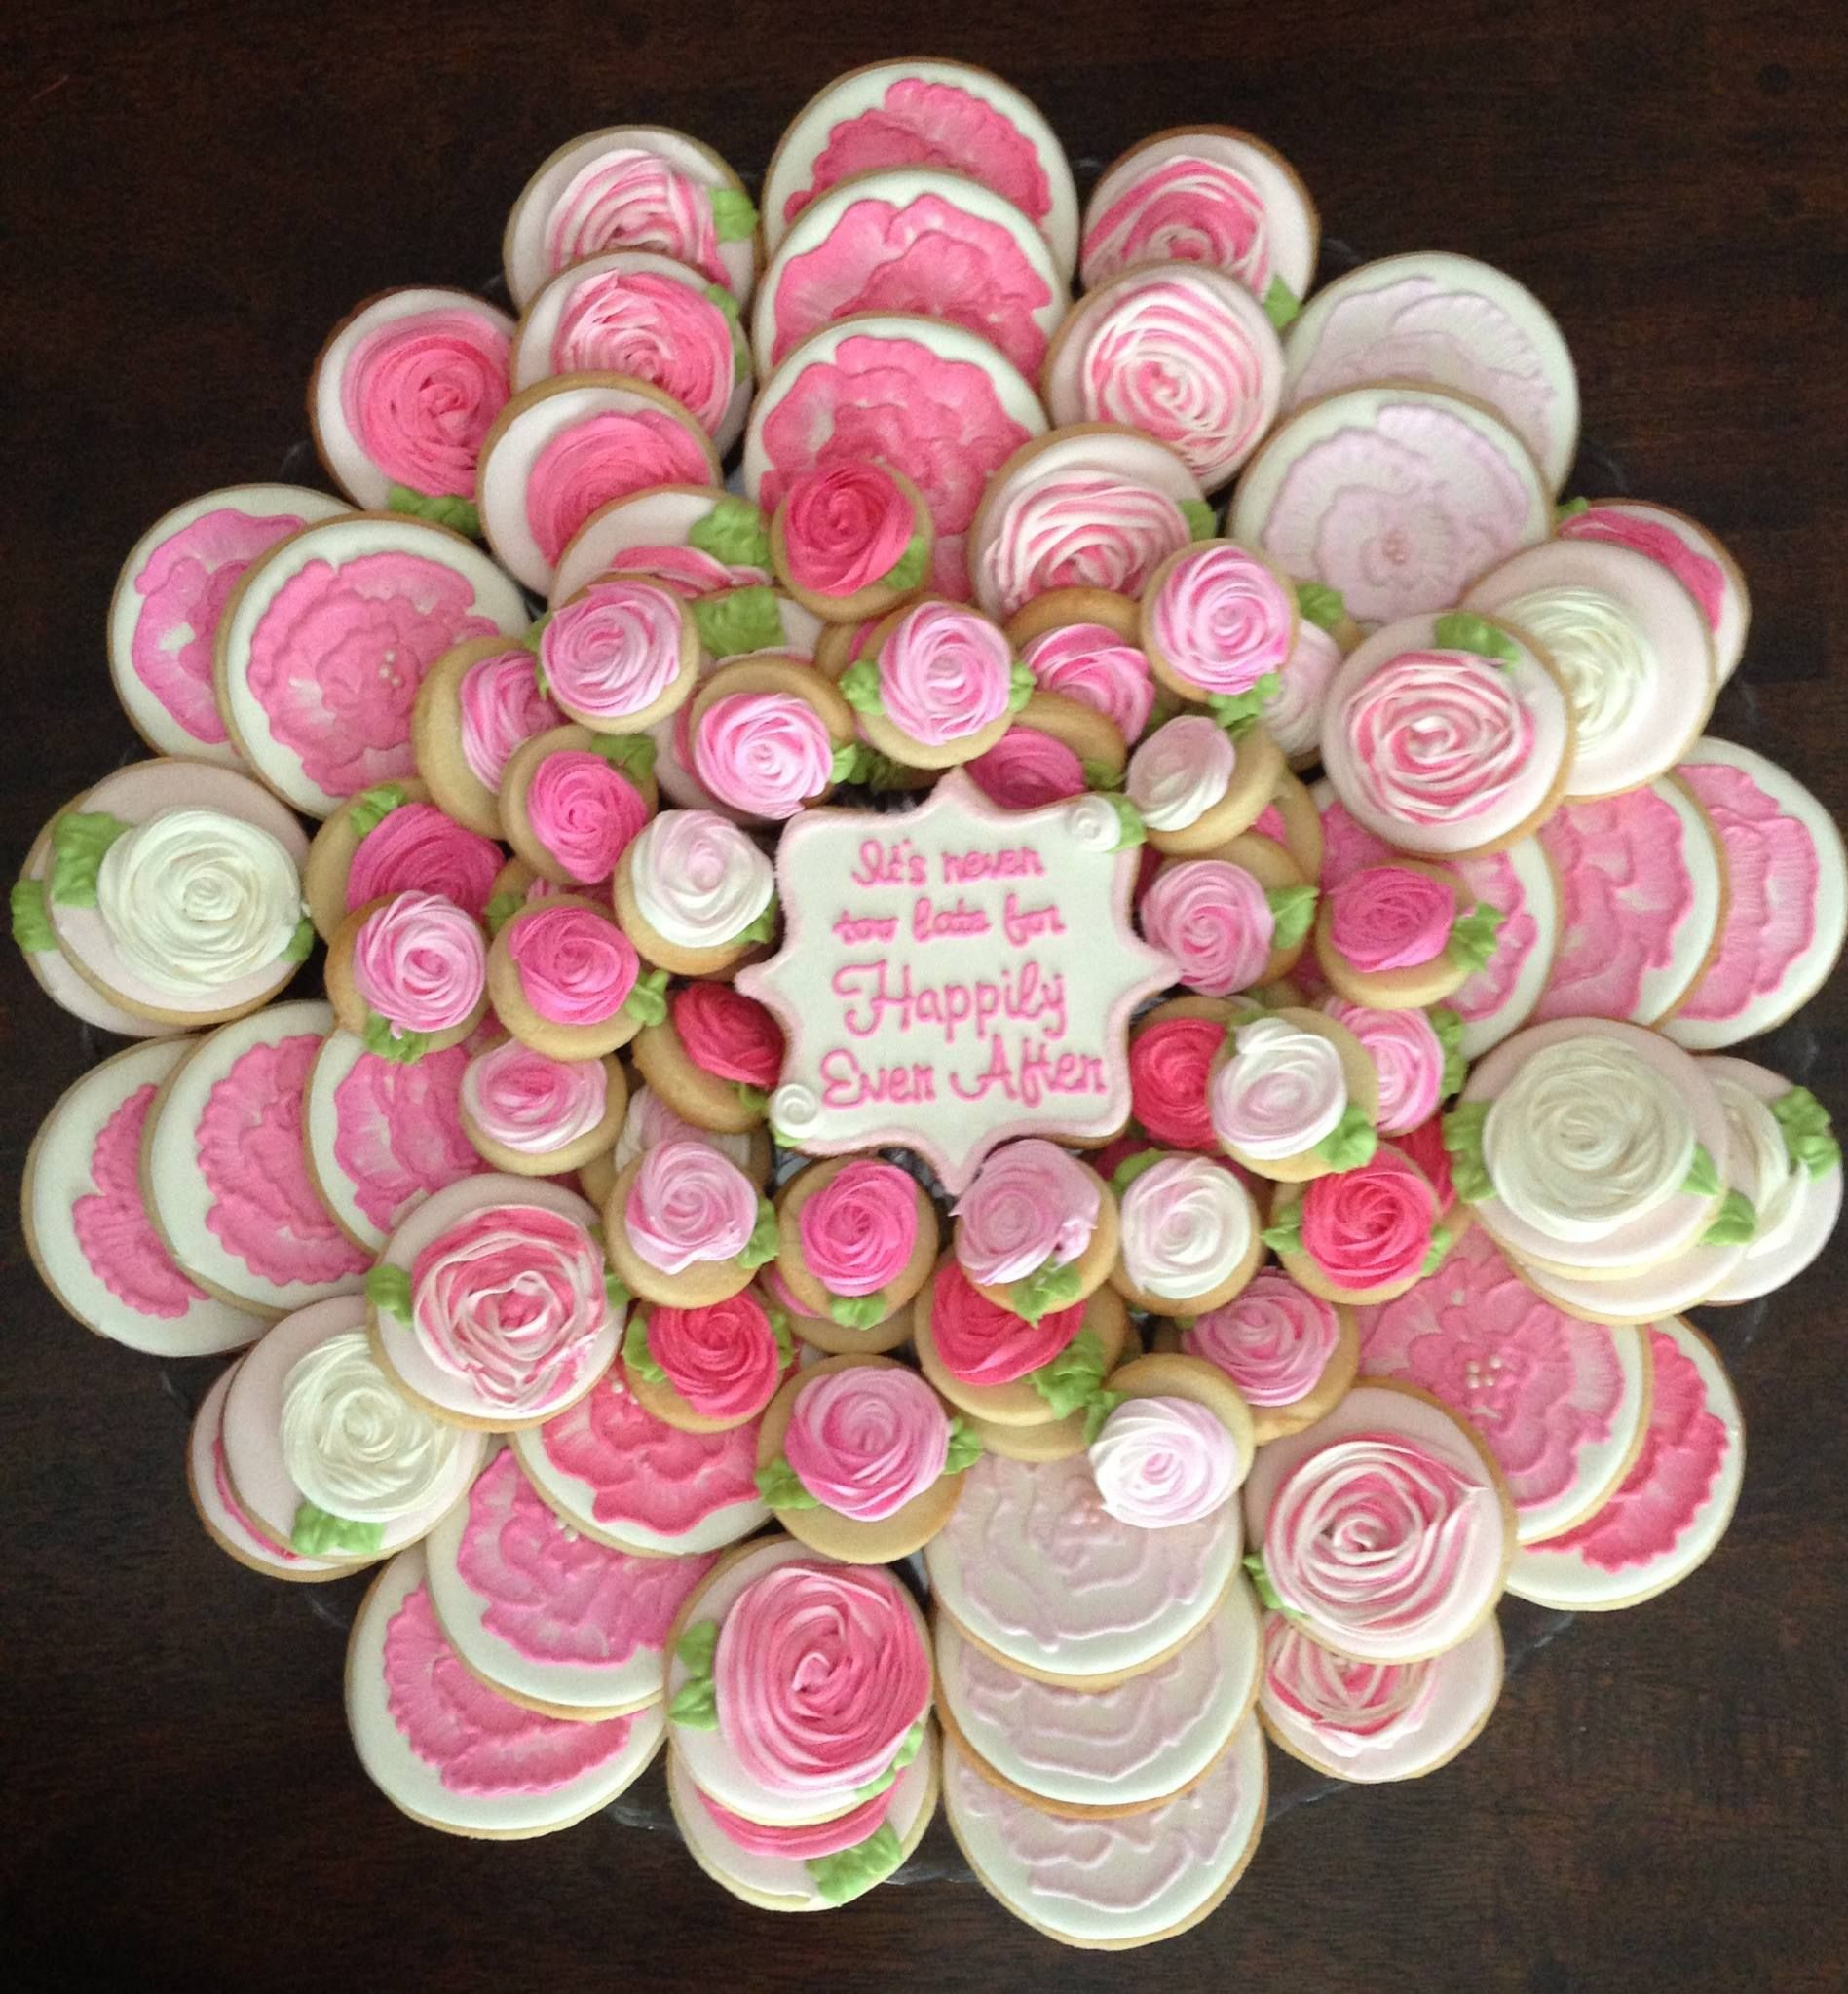 Rehearsal Dinner Decorated Cookies by Nanny and Weebs at http://www ...